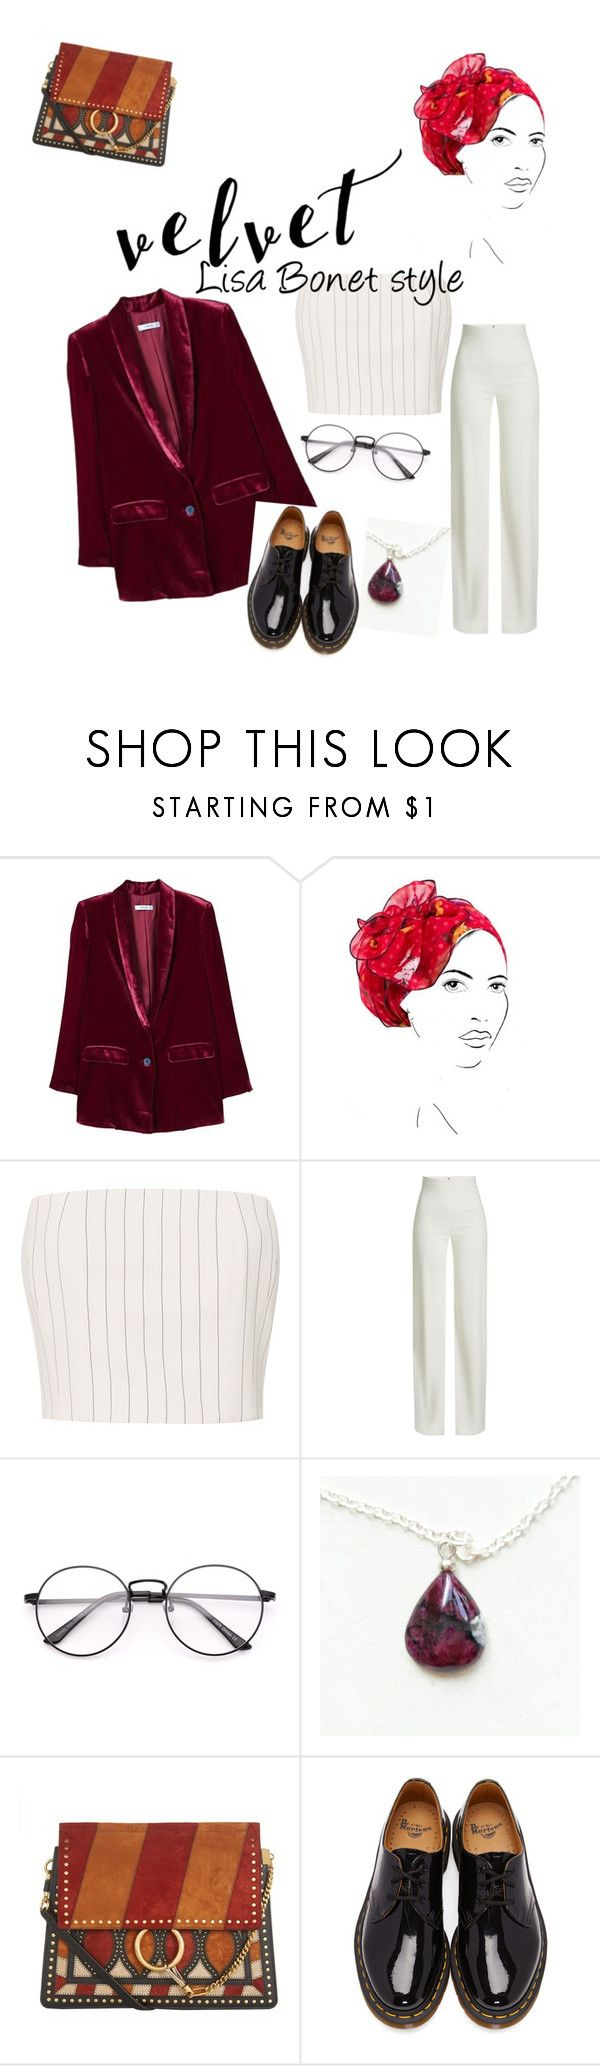 """""""Lisa Bonet-the Cosby show-velvet"""" by alexandra-okwuosa ❤ liked on Polyvore featuring MANGO, Rinati Lakel, Brandon Maxwell, Chloé and Dr. Martens"""